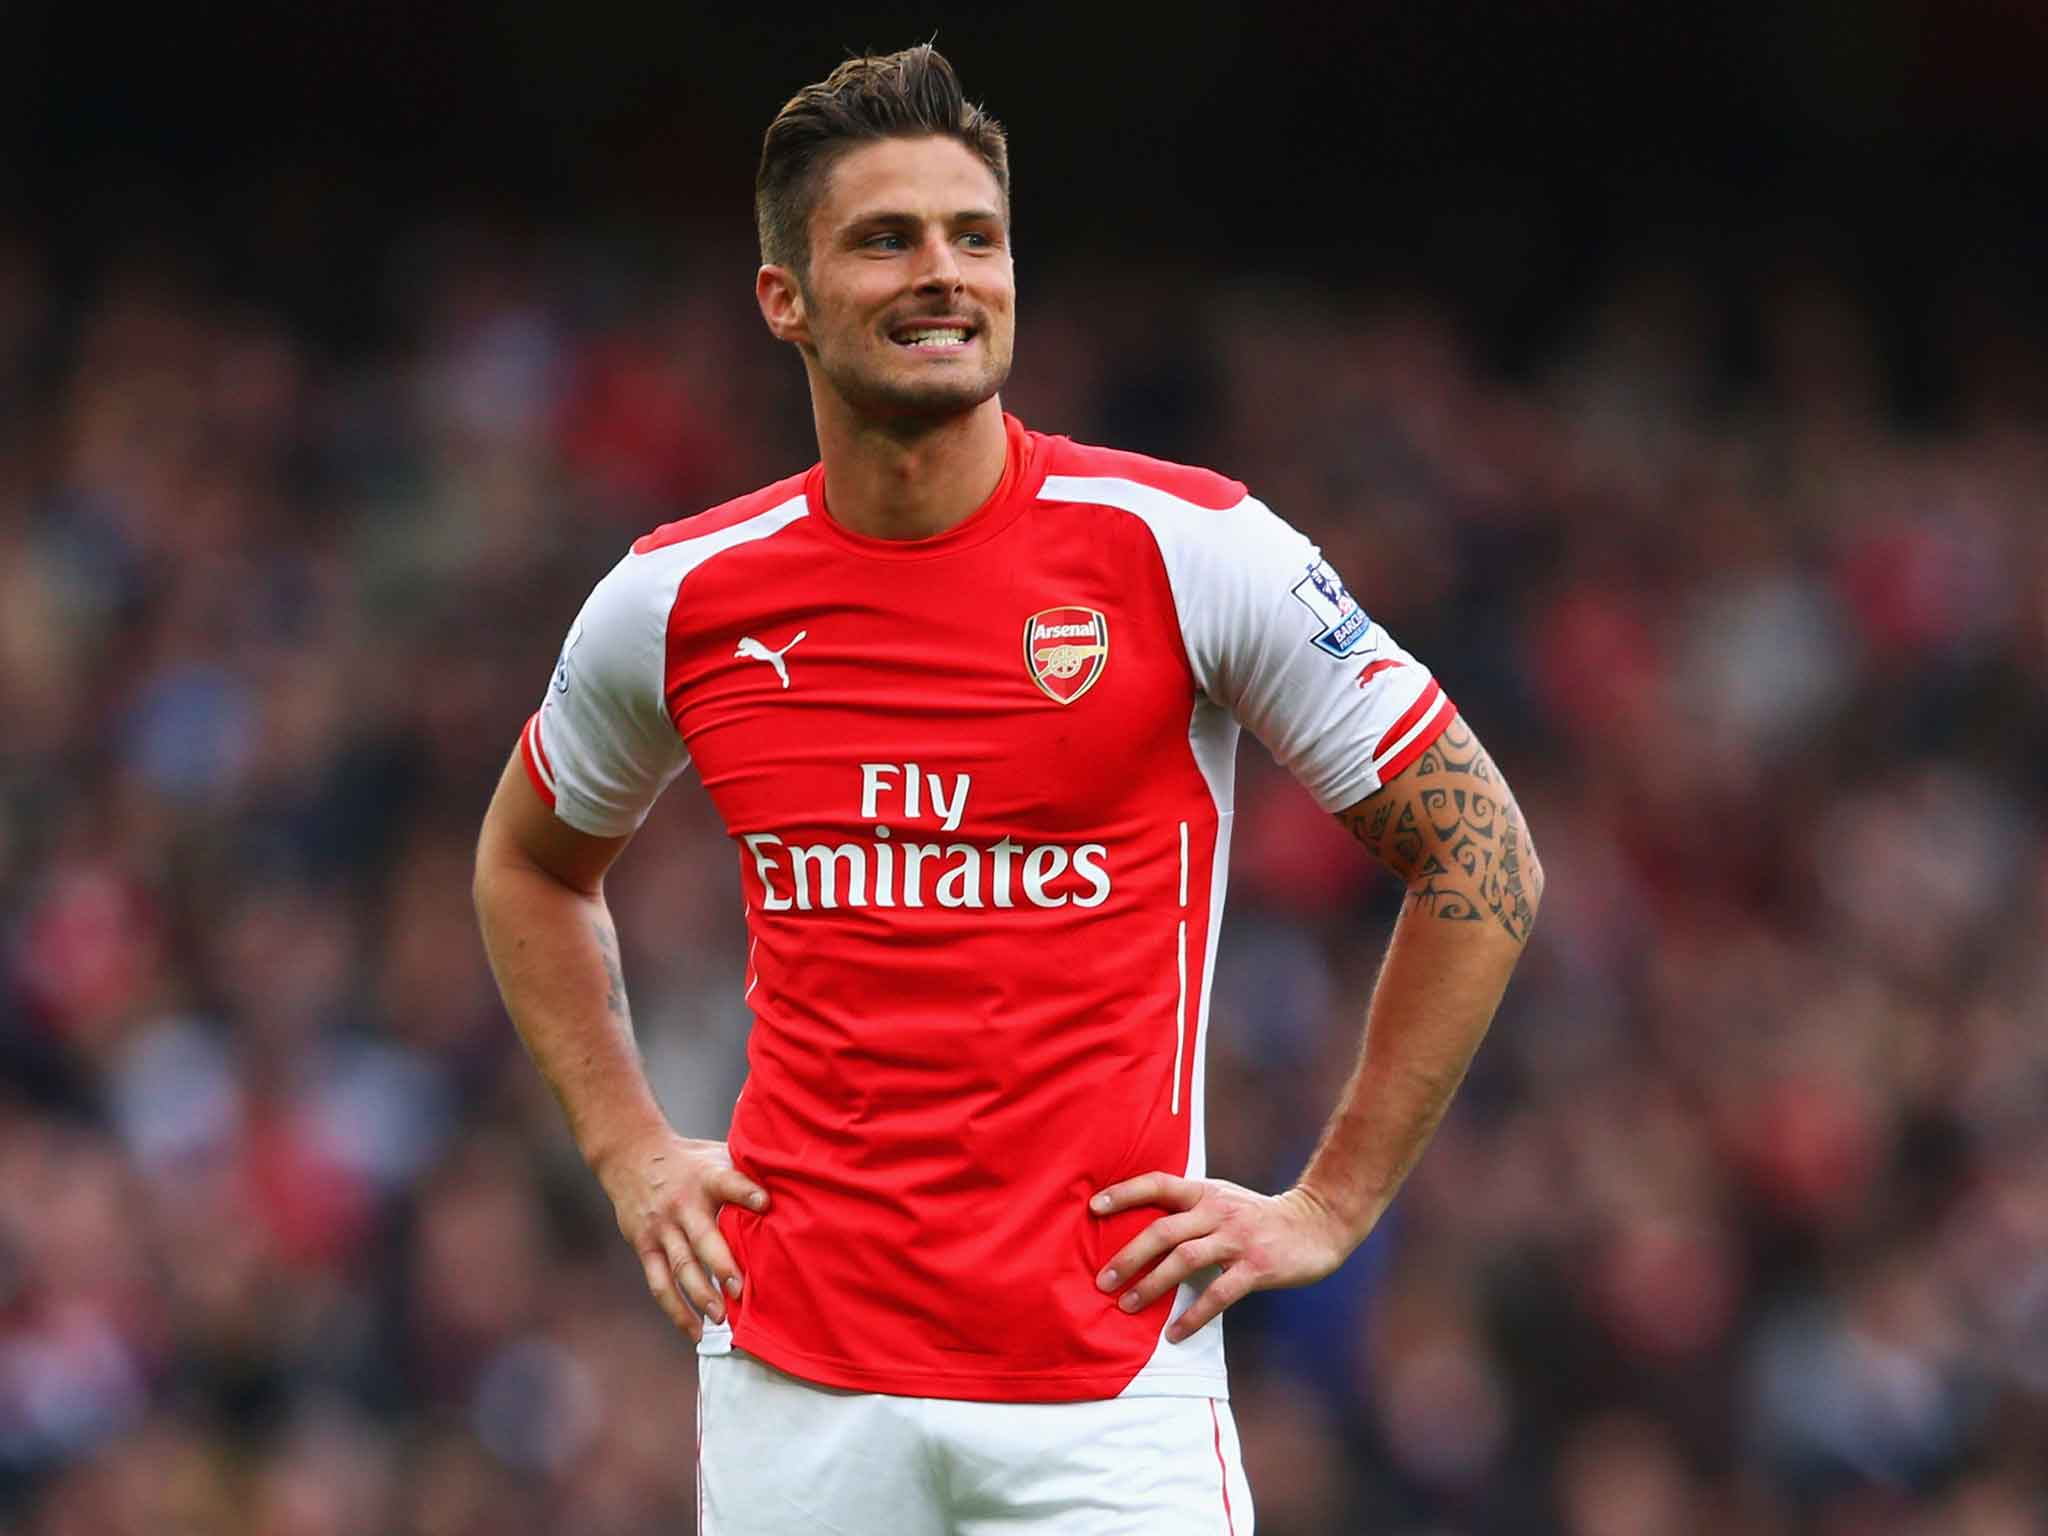 Wallpaper Manchester United Hd Olivier Giroud Claims He Did Not Lose Any Sleep Over